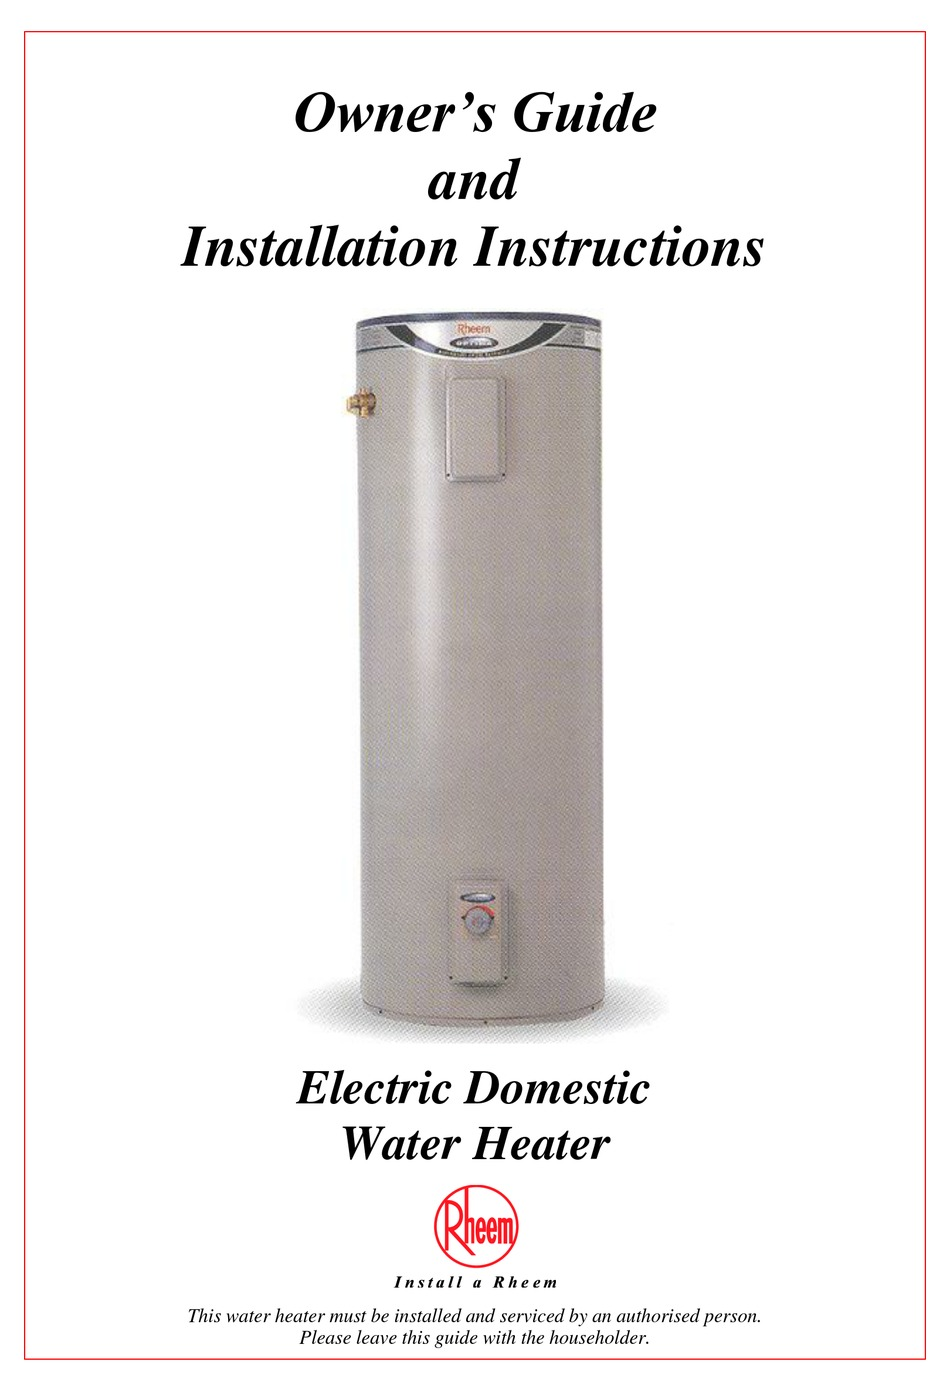 RHEEM ELECTRIC DOMESTIC WATER HEATER INSTALLATION AND OWNER'S MANUAL Pdf  Download | ManualsLib